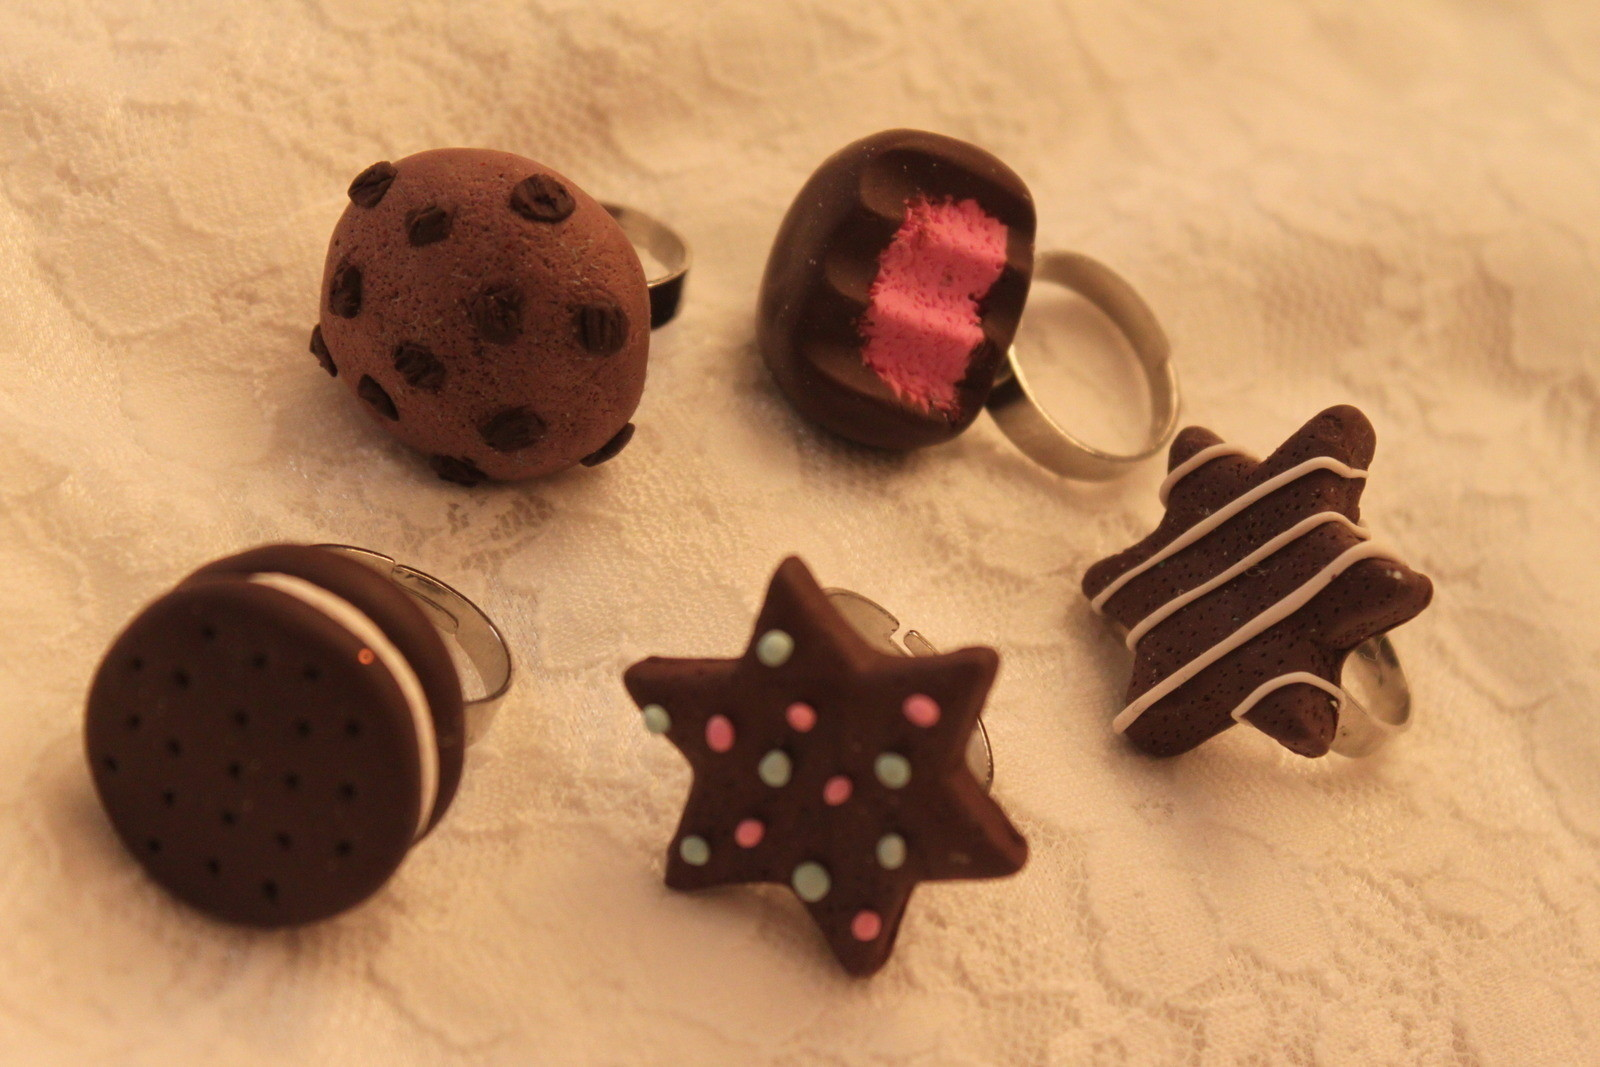 Delicious Looking Fimo Clay Rings A Clay Ring Jewelry Making And Molding On Cut Out Keep